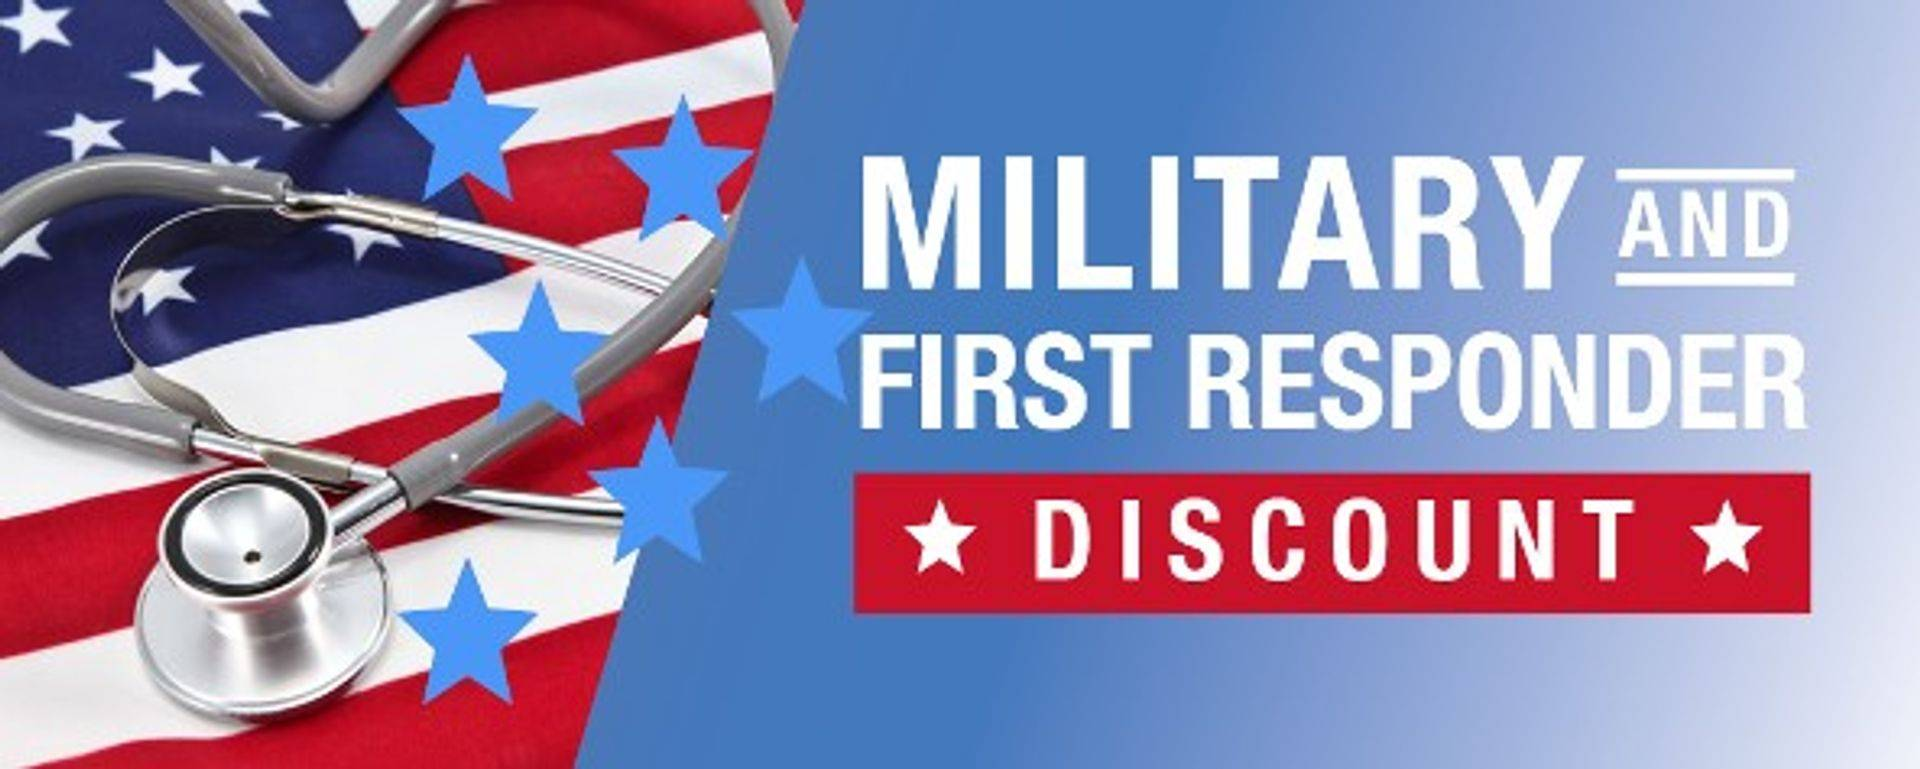 Veteran and First Responder Discounts